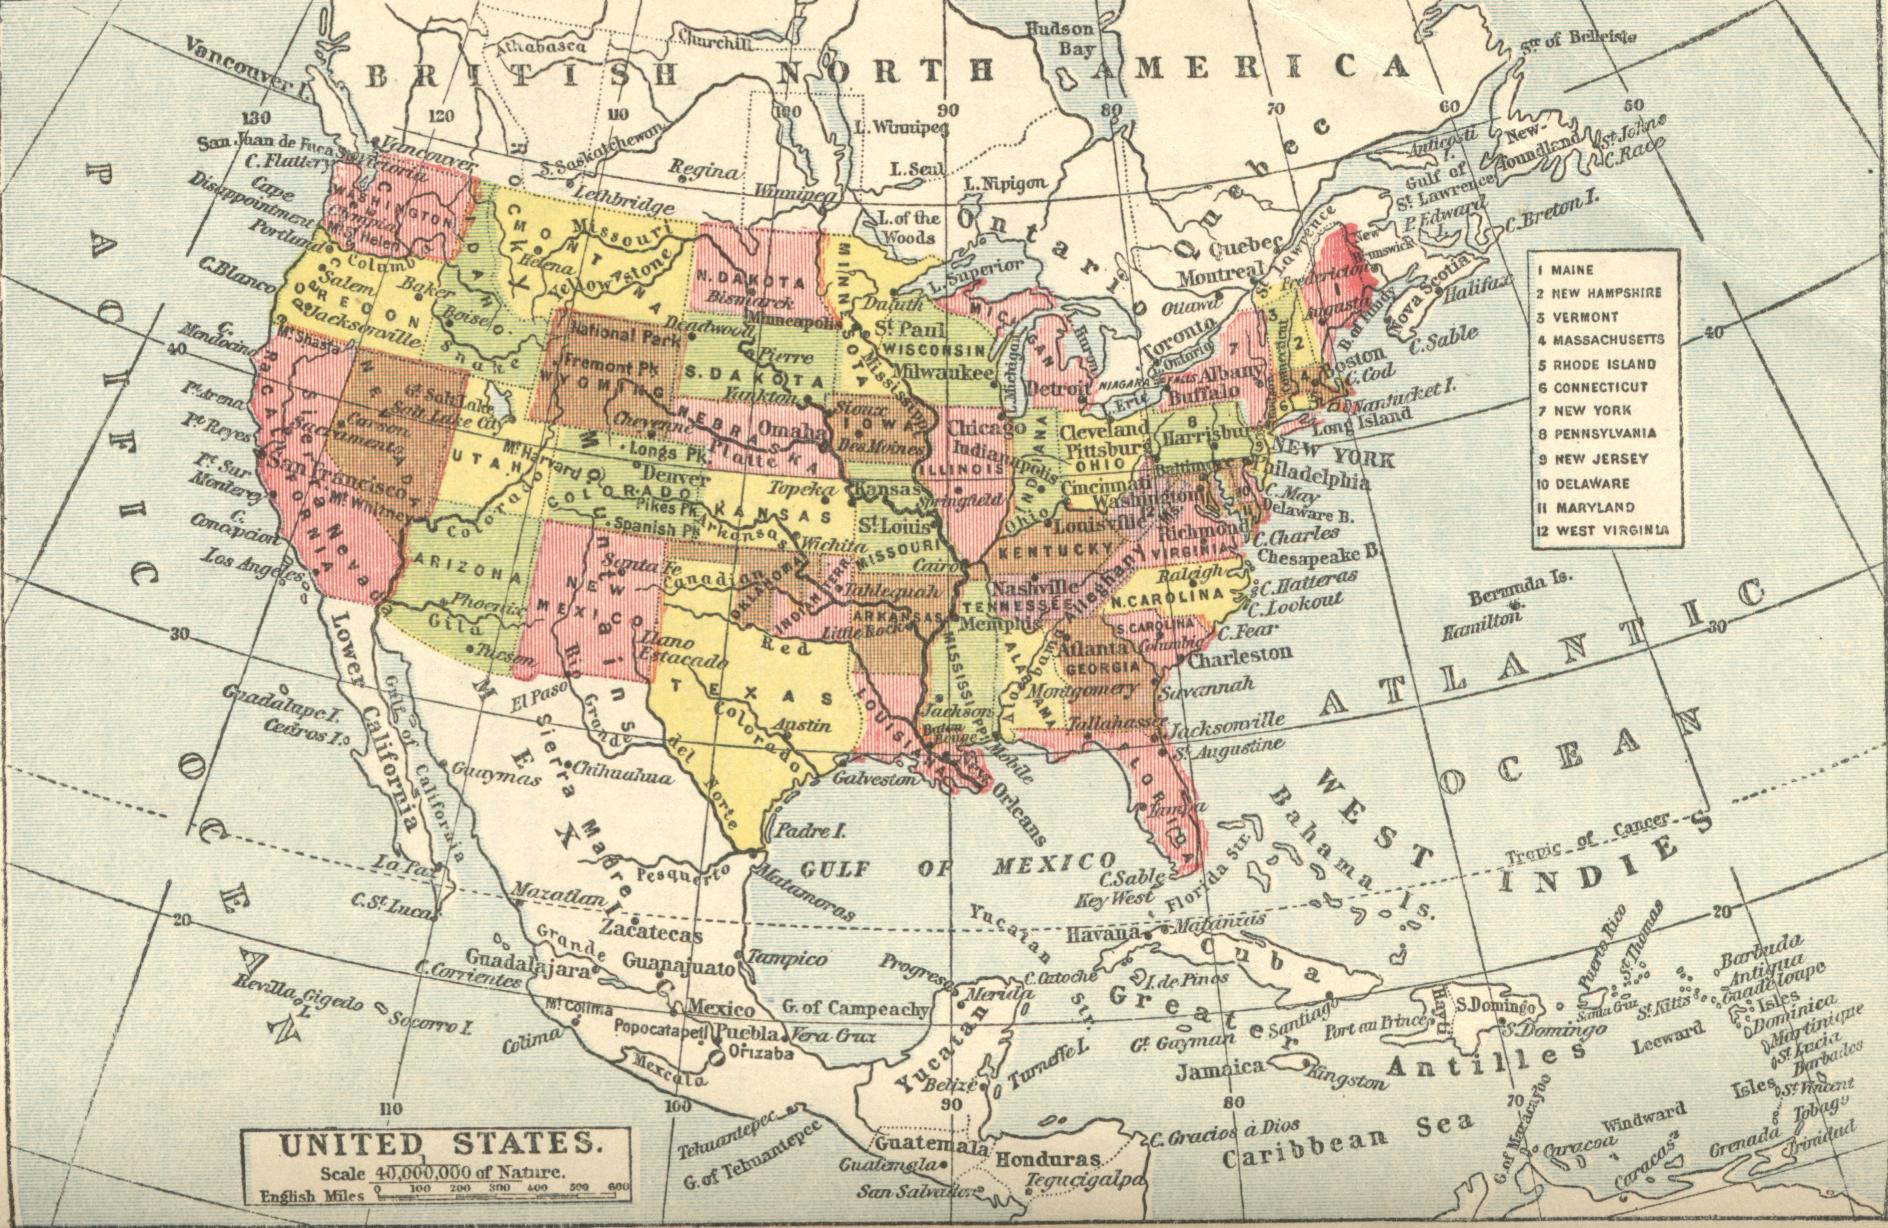 Map Of The United States Of America Also Showing Much Of Canada - A picture of the united states of america map